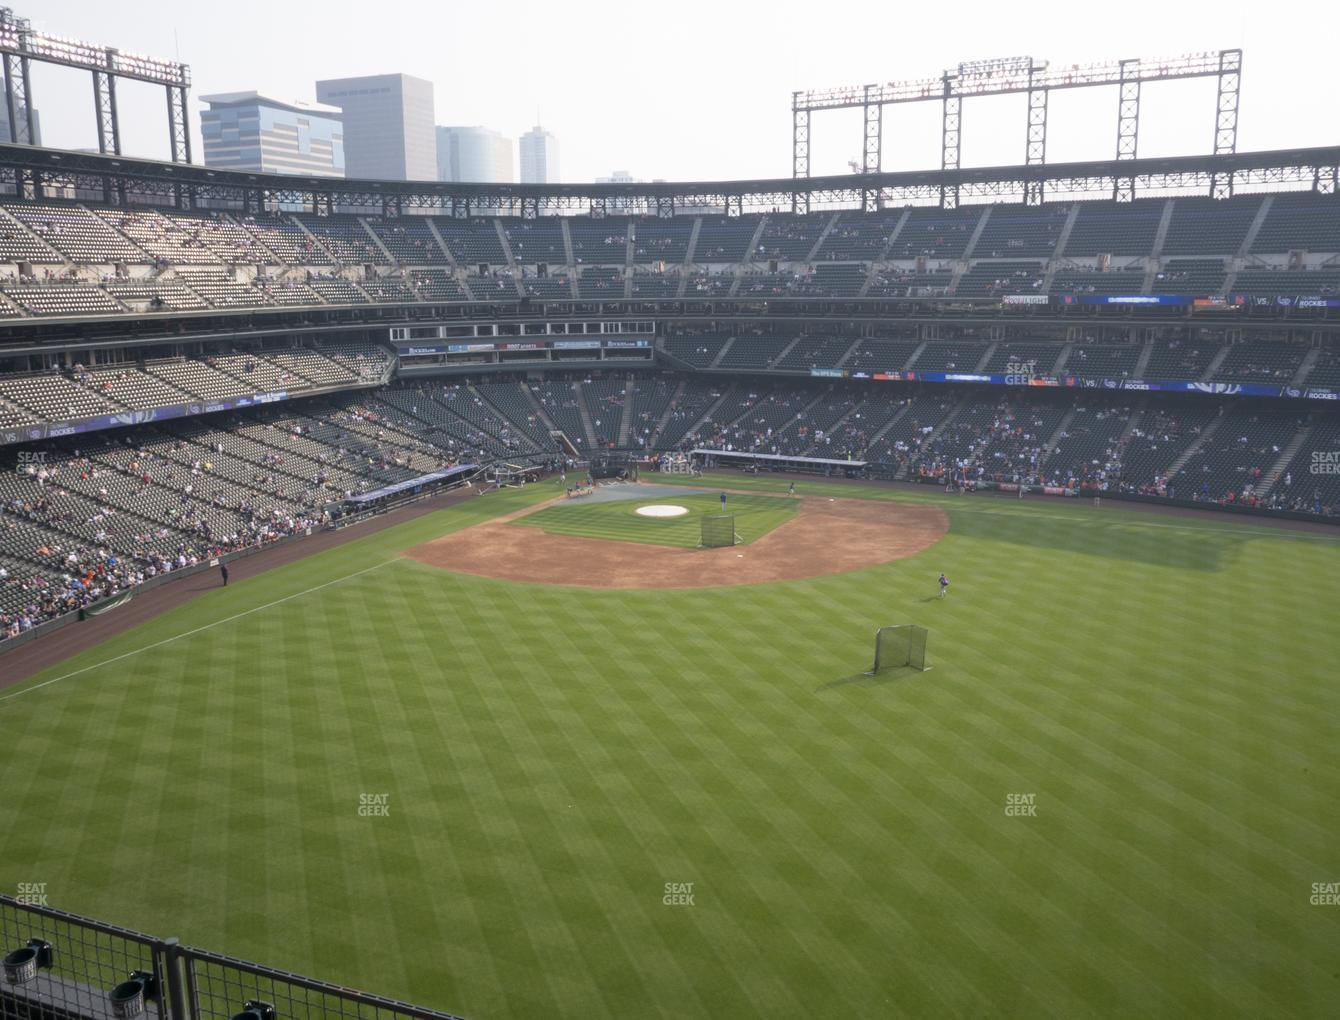 Colorado Rockies at Coors Field Lower 303 View